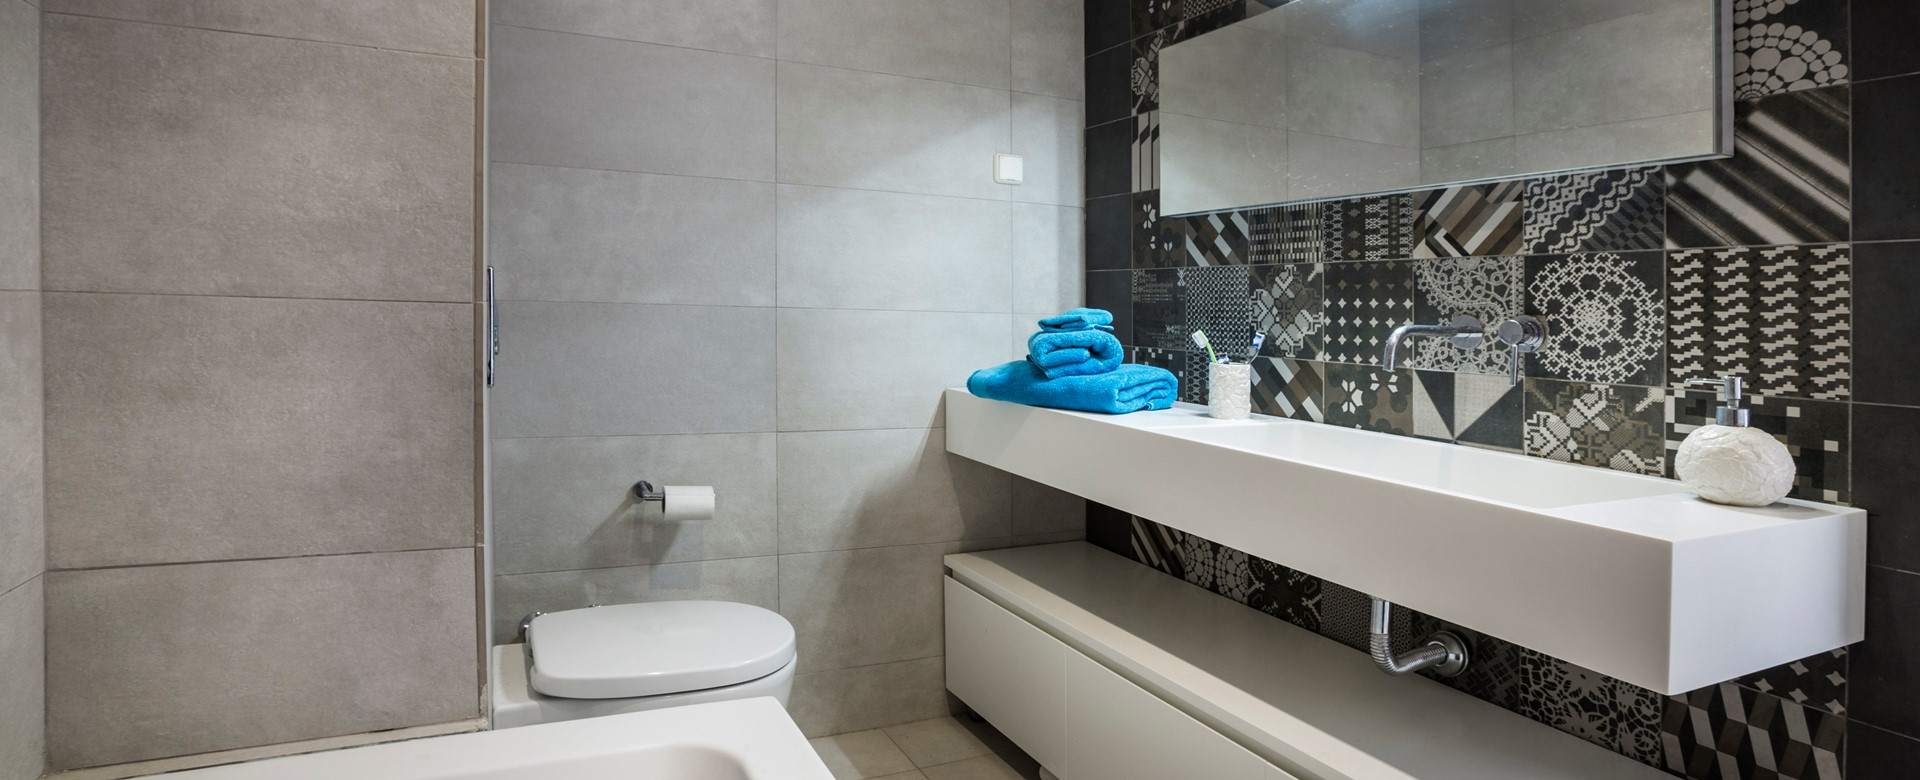 Modern fitted bathroom with bath and basin inside Palm House Harbourfront Mansion, Agia Efimia, Kefalonia, Greek Islands